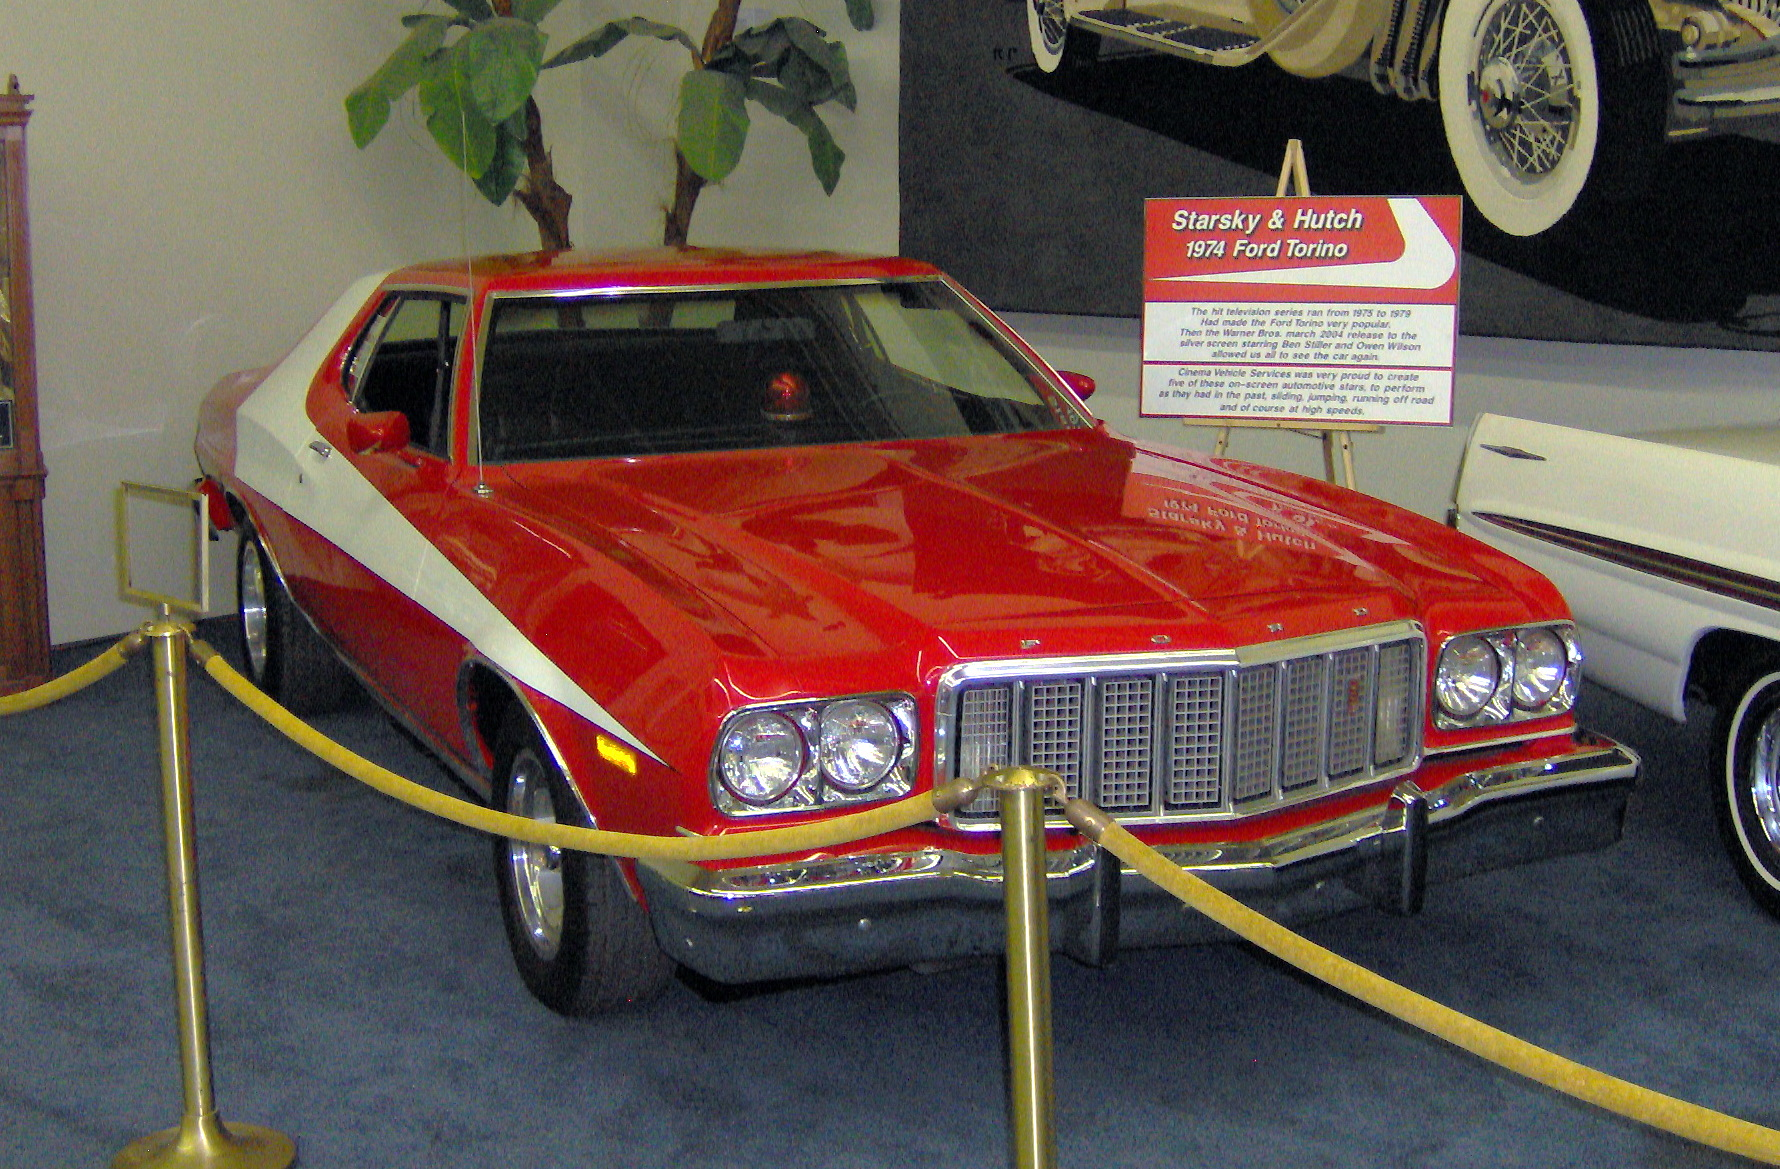 Monaco furthermore Granada further 653662 Possible Project Gta Iv New York 1988 Car Pack furthermore De Tomaso Longch furthermore Lincoln Town Car 1980. on ford ltd 4 door 1980